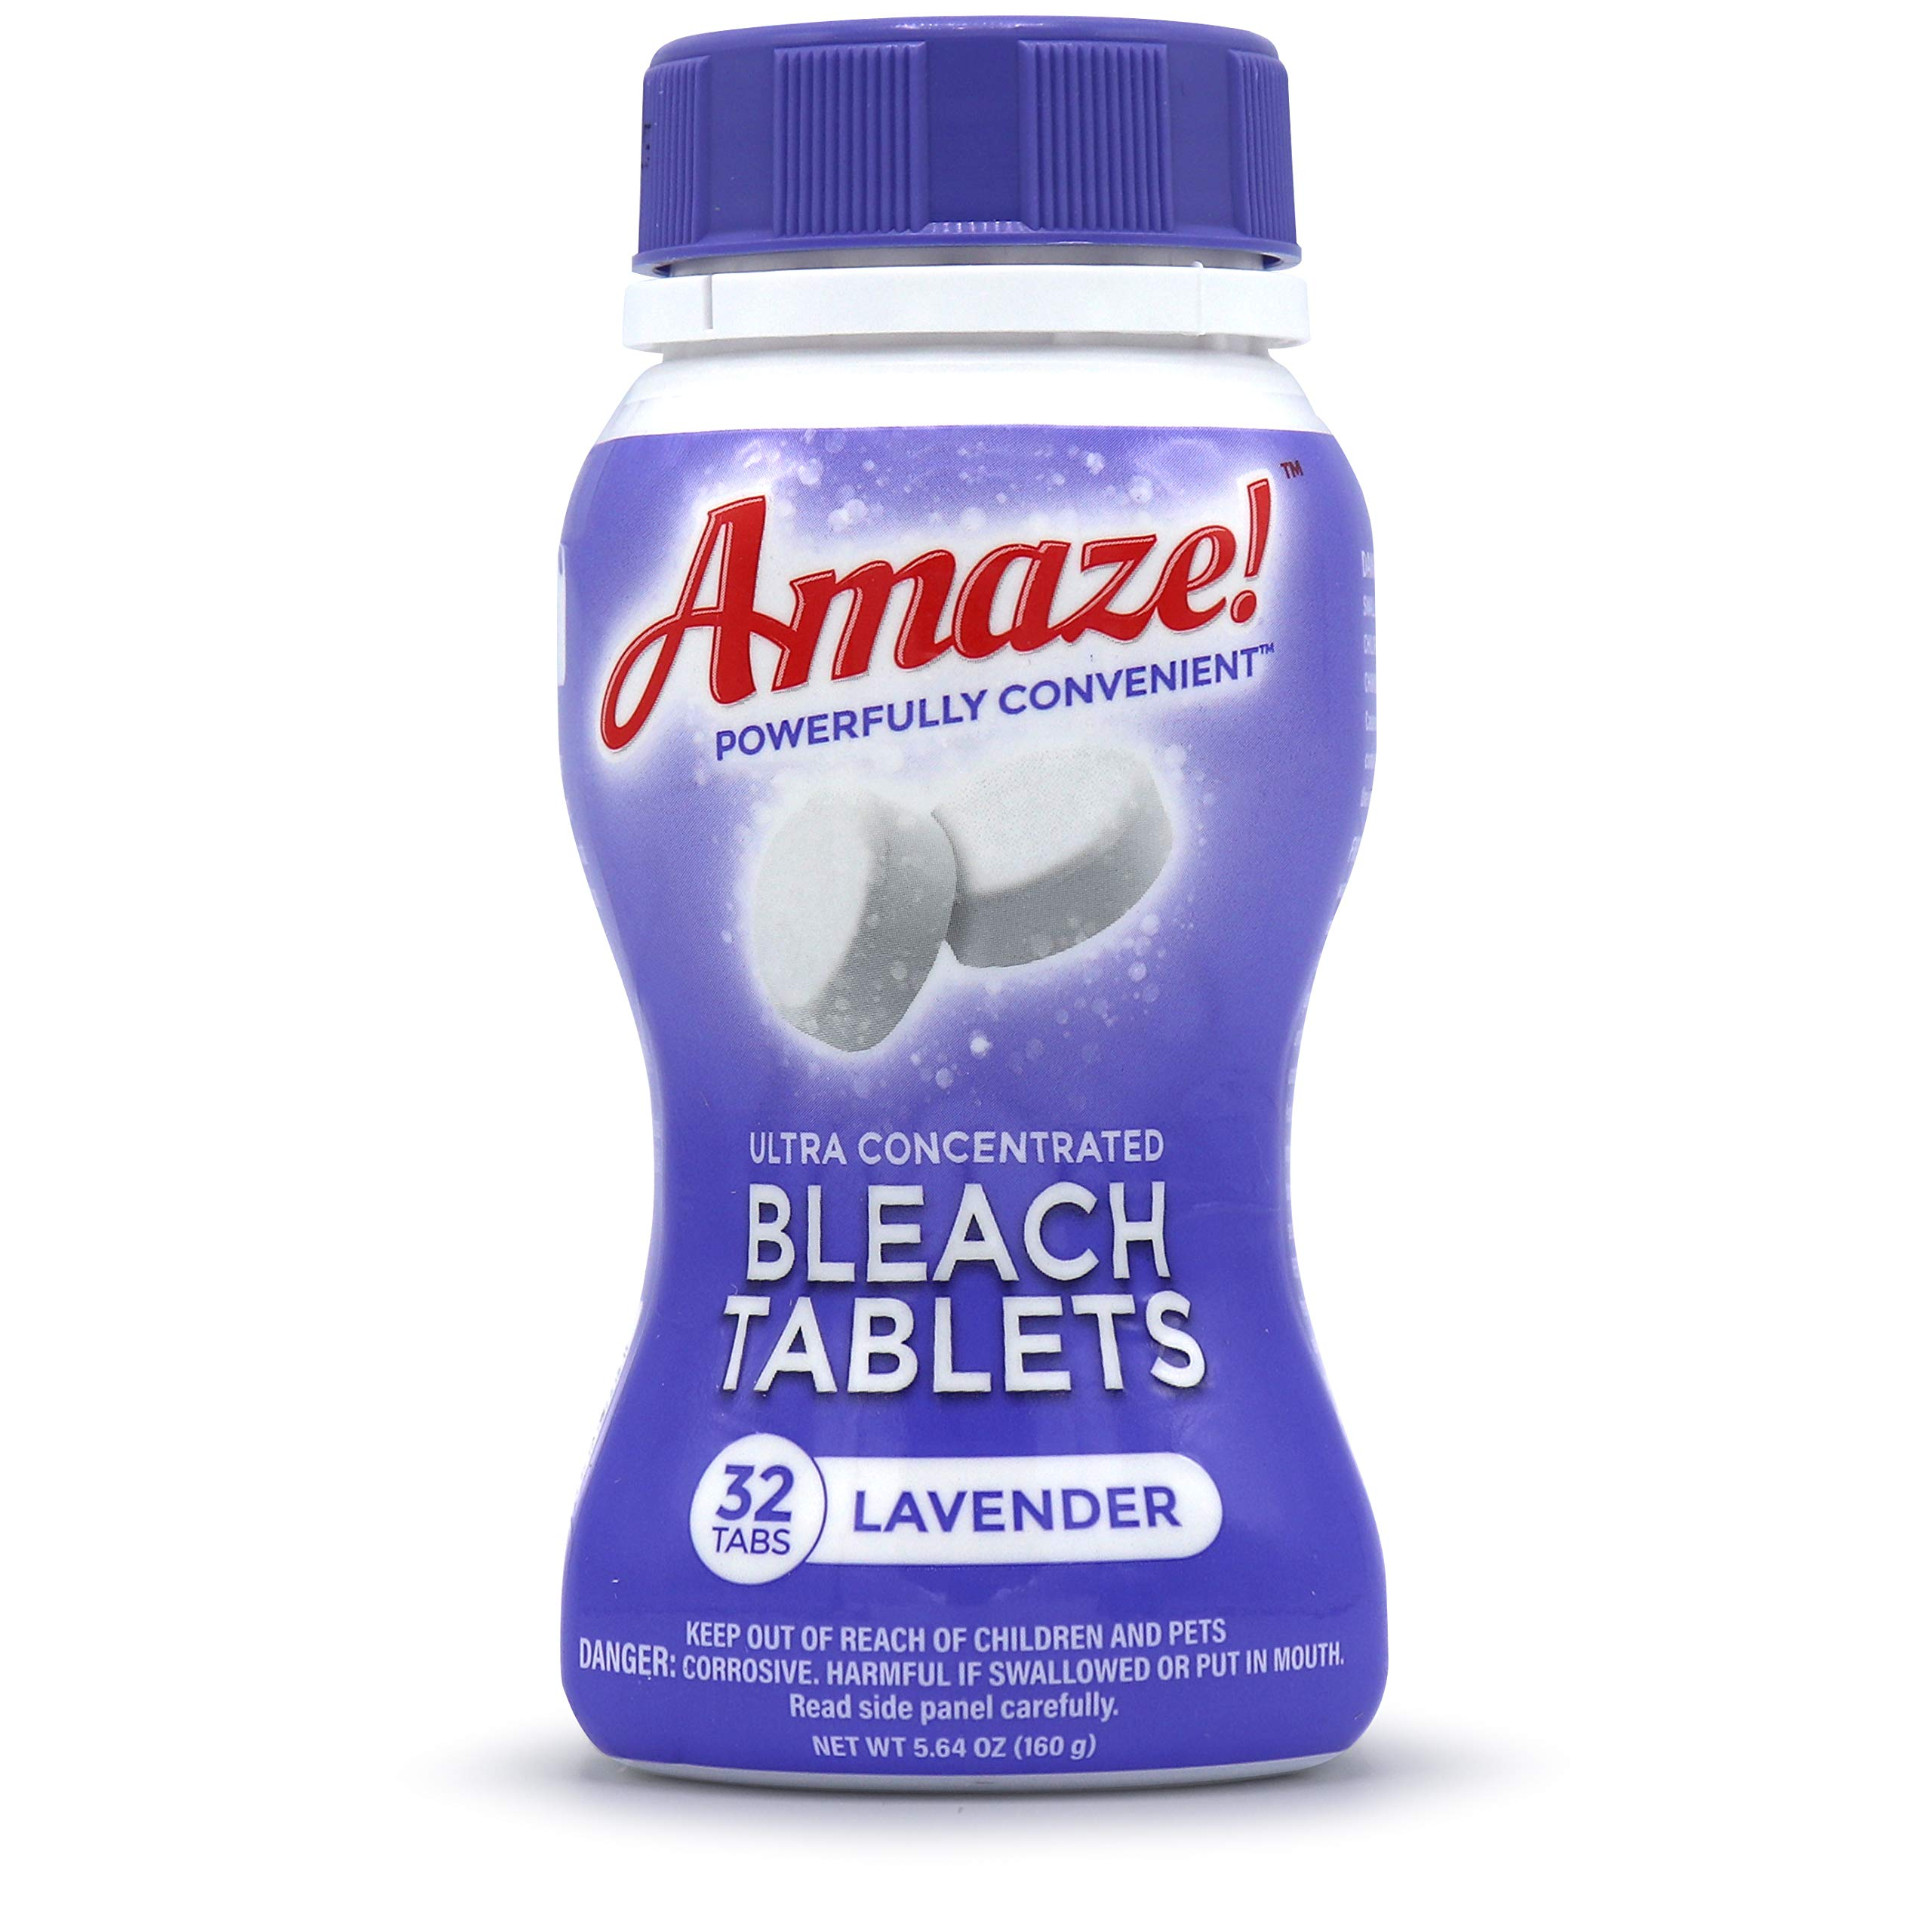 AMAZE! Bleach Tablets Ultra Concentrated Bleach Tablets for Laundry and Home Cleaning. (Lavender, Case of 6 Bottles)